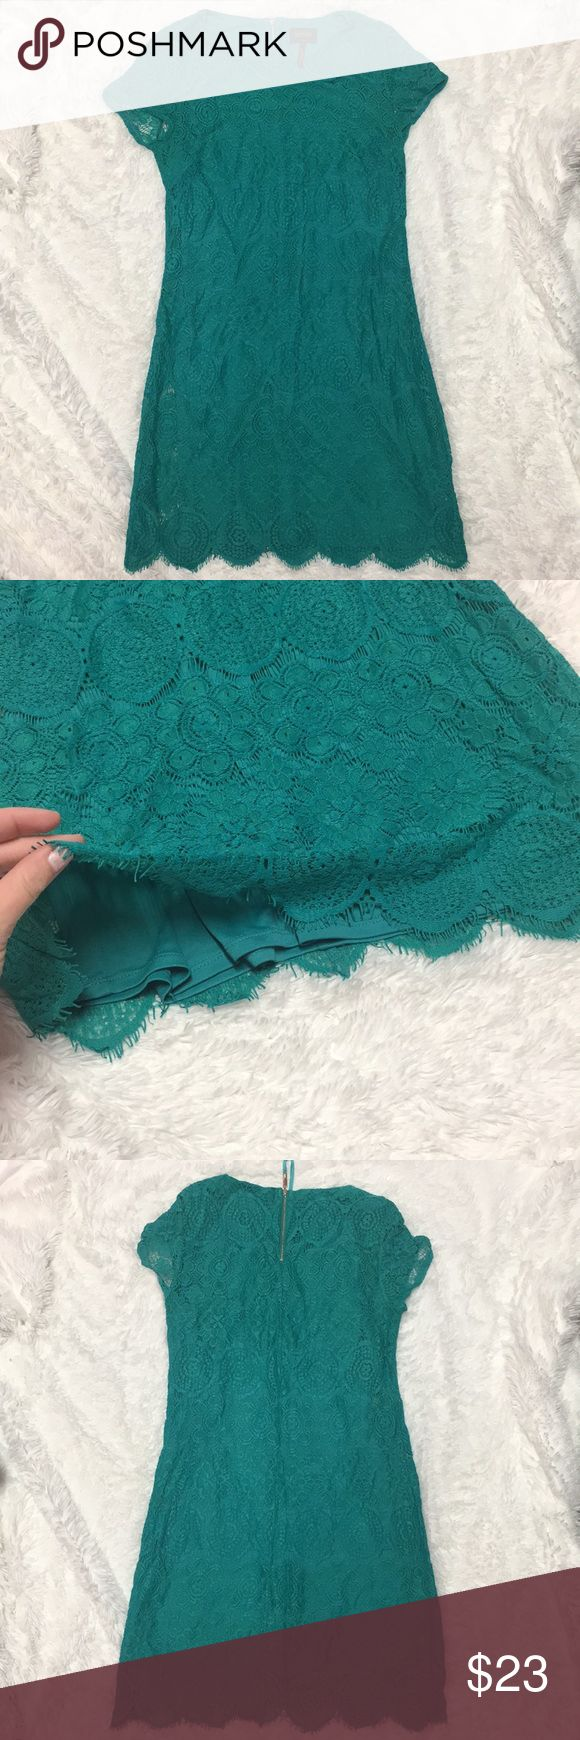 Laundry by Shelli Segal Lace Dress, Size 4 Laundry by Shelli Segal Lace Dress, Size 4. Work once- in excellent condition. Comes from smoke-free home! Laundry By Shelli Segal Dresses Mini